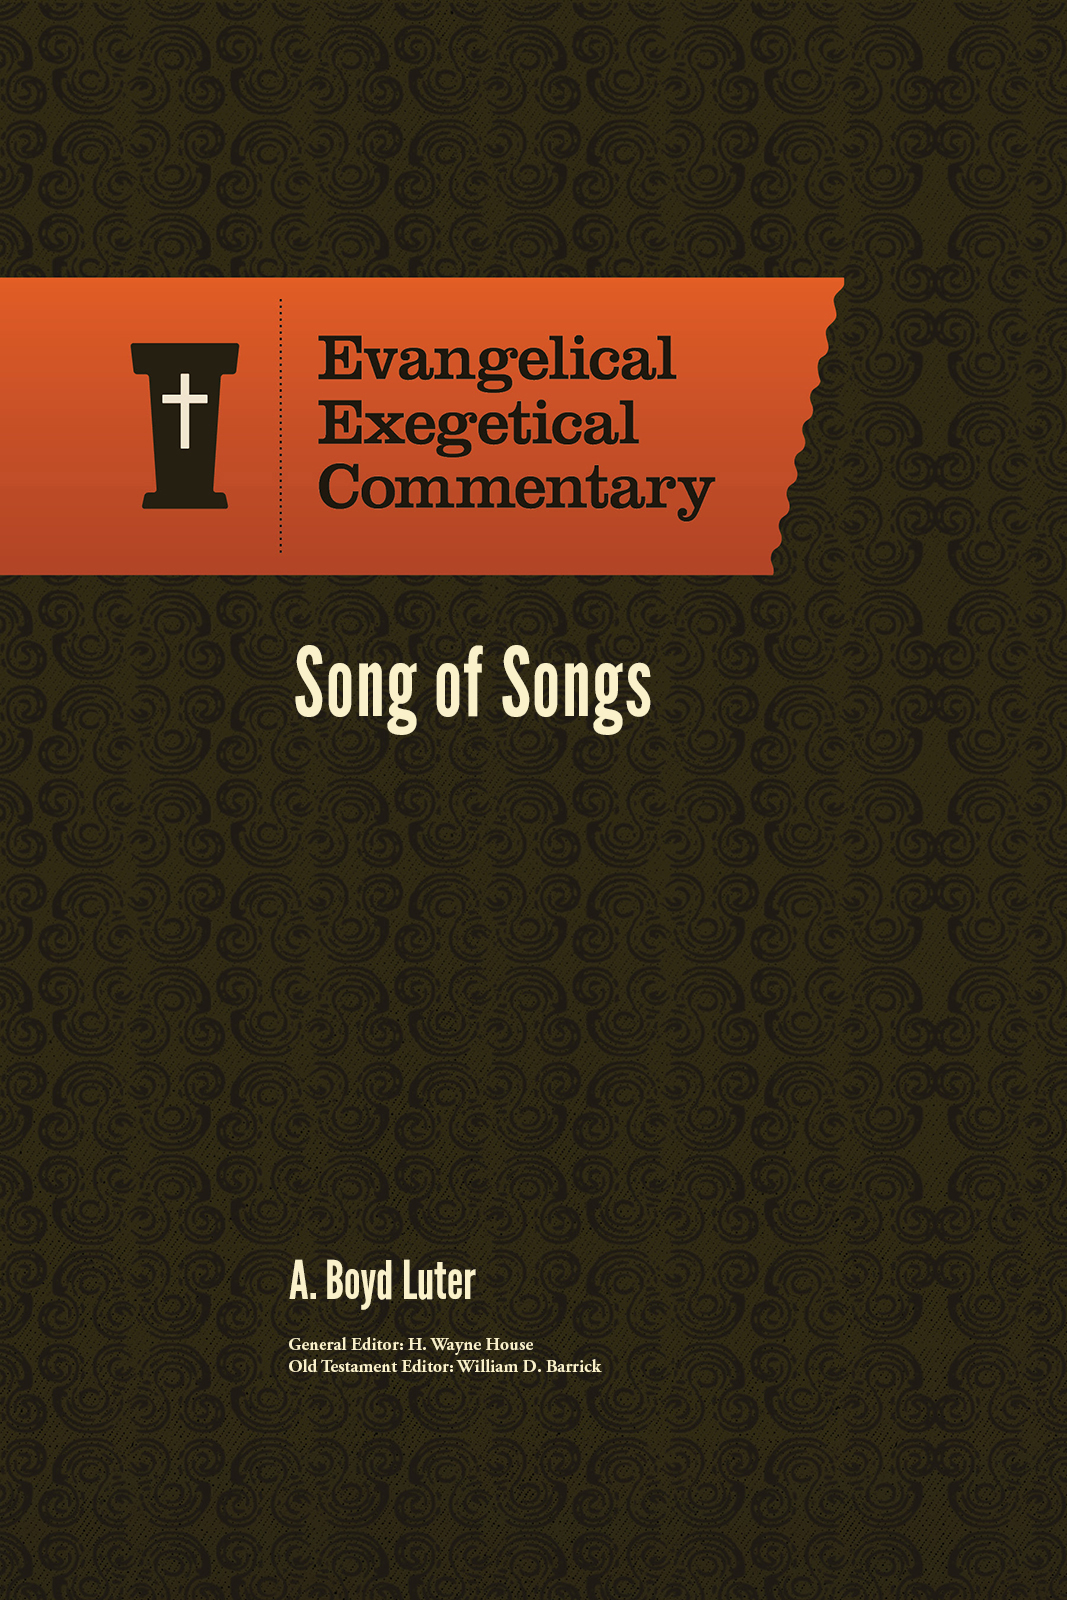 Song of Songs: Evangelical Exegetical Commentary (EEC)